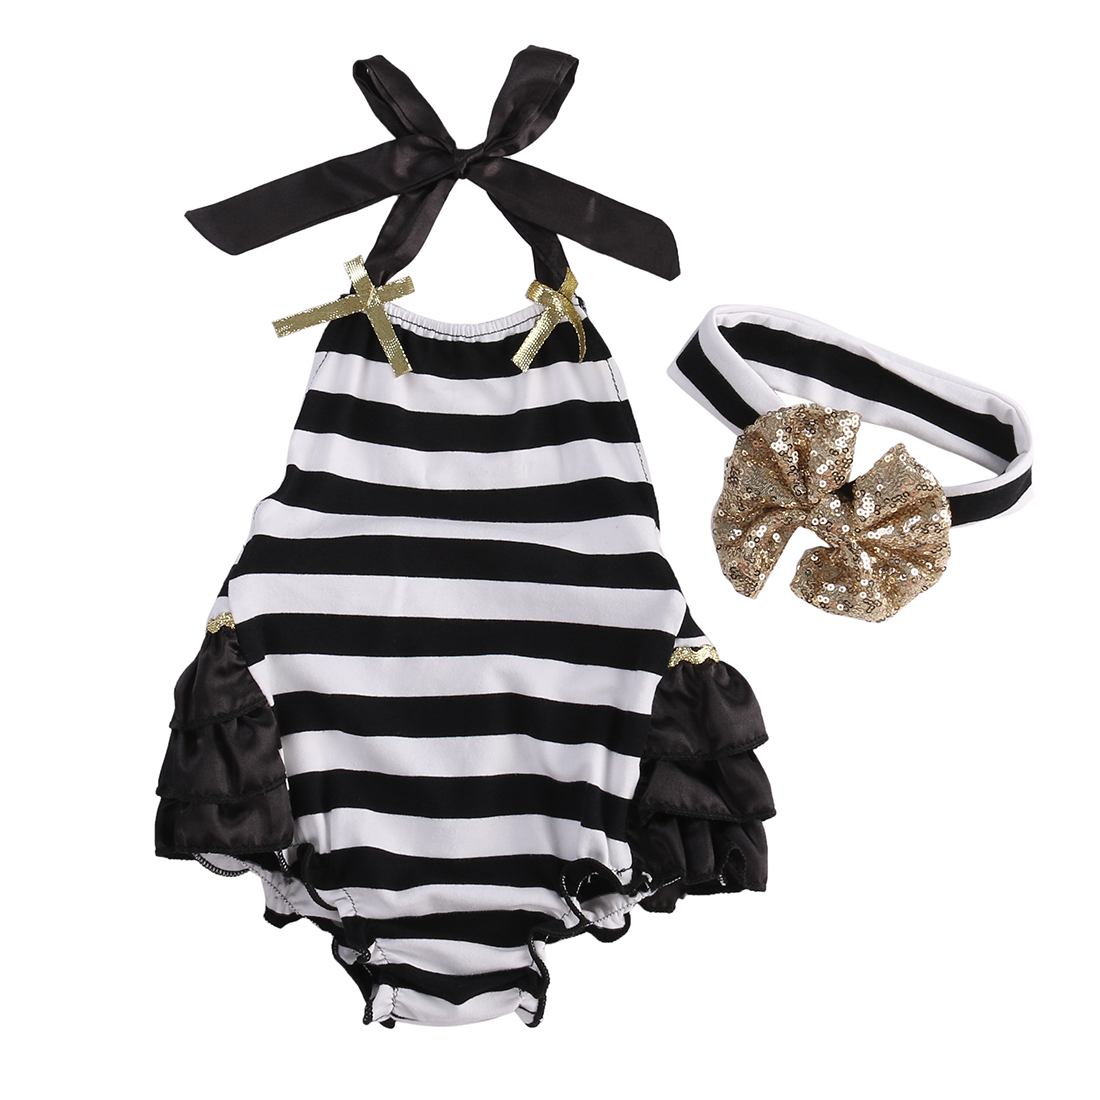 Baby Rompers Girl Baby Costumes Set Stripe Floral Sleeveless Halter Romper Jumpsuit Sunsuit Outfit With Headband